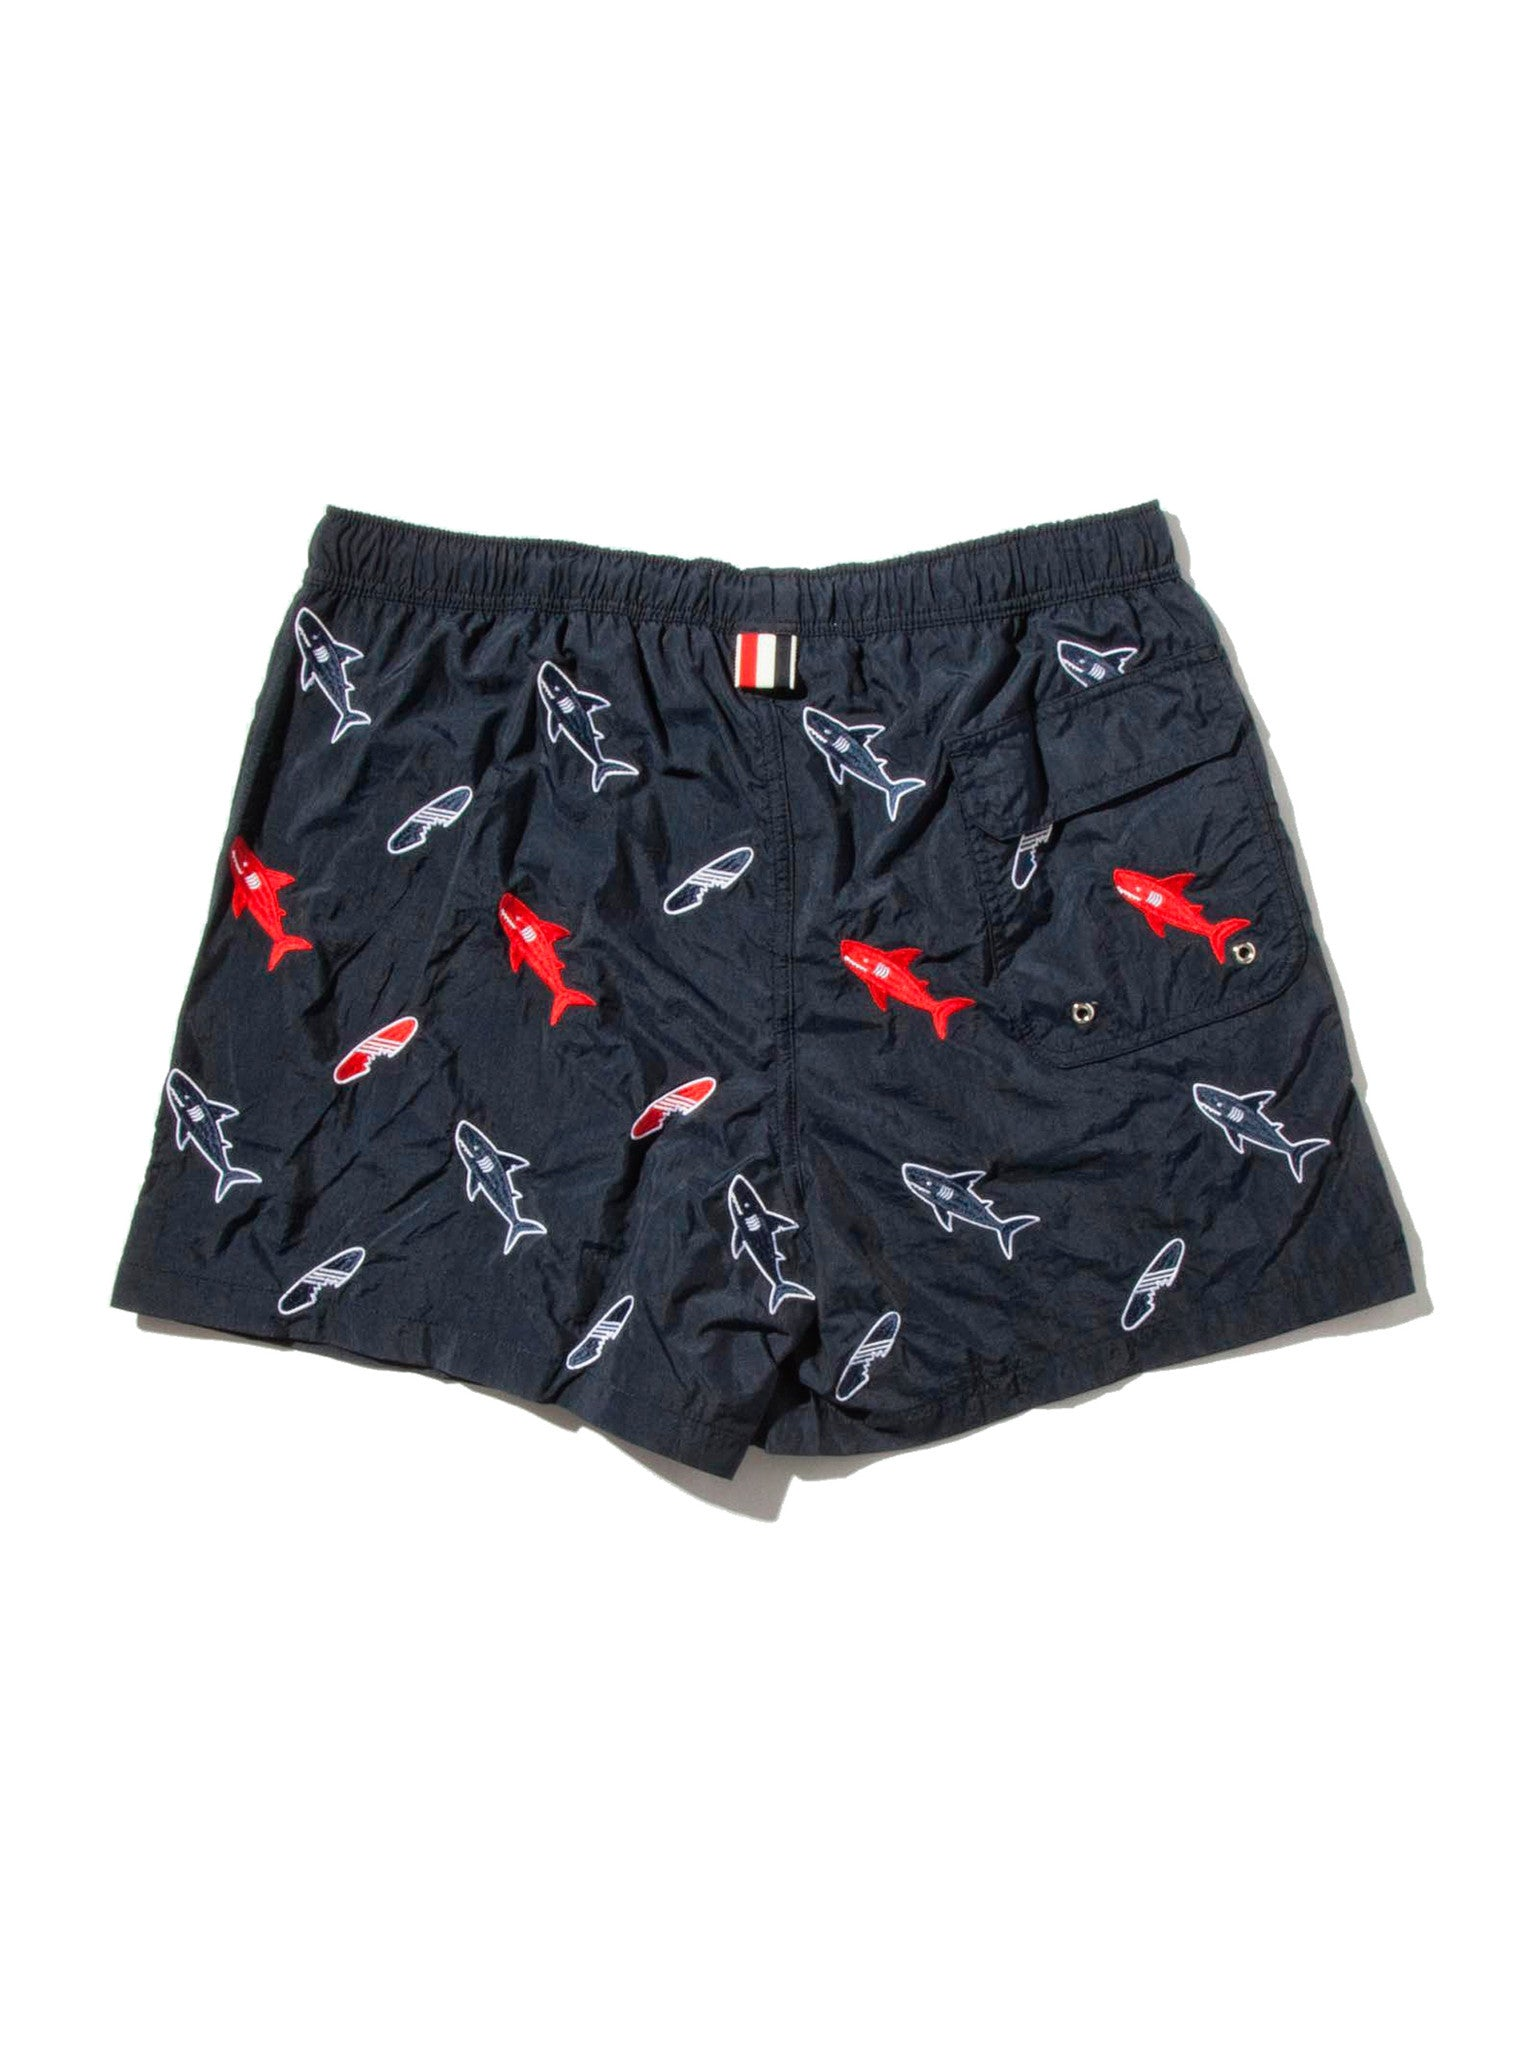 Navy Classic Swim Trunk (Shark & Surfboard Embroidery) 6